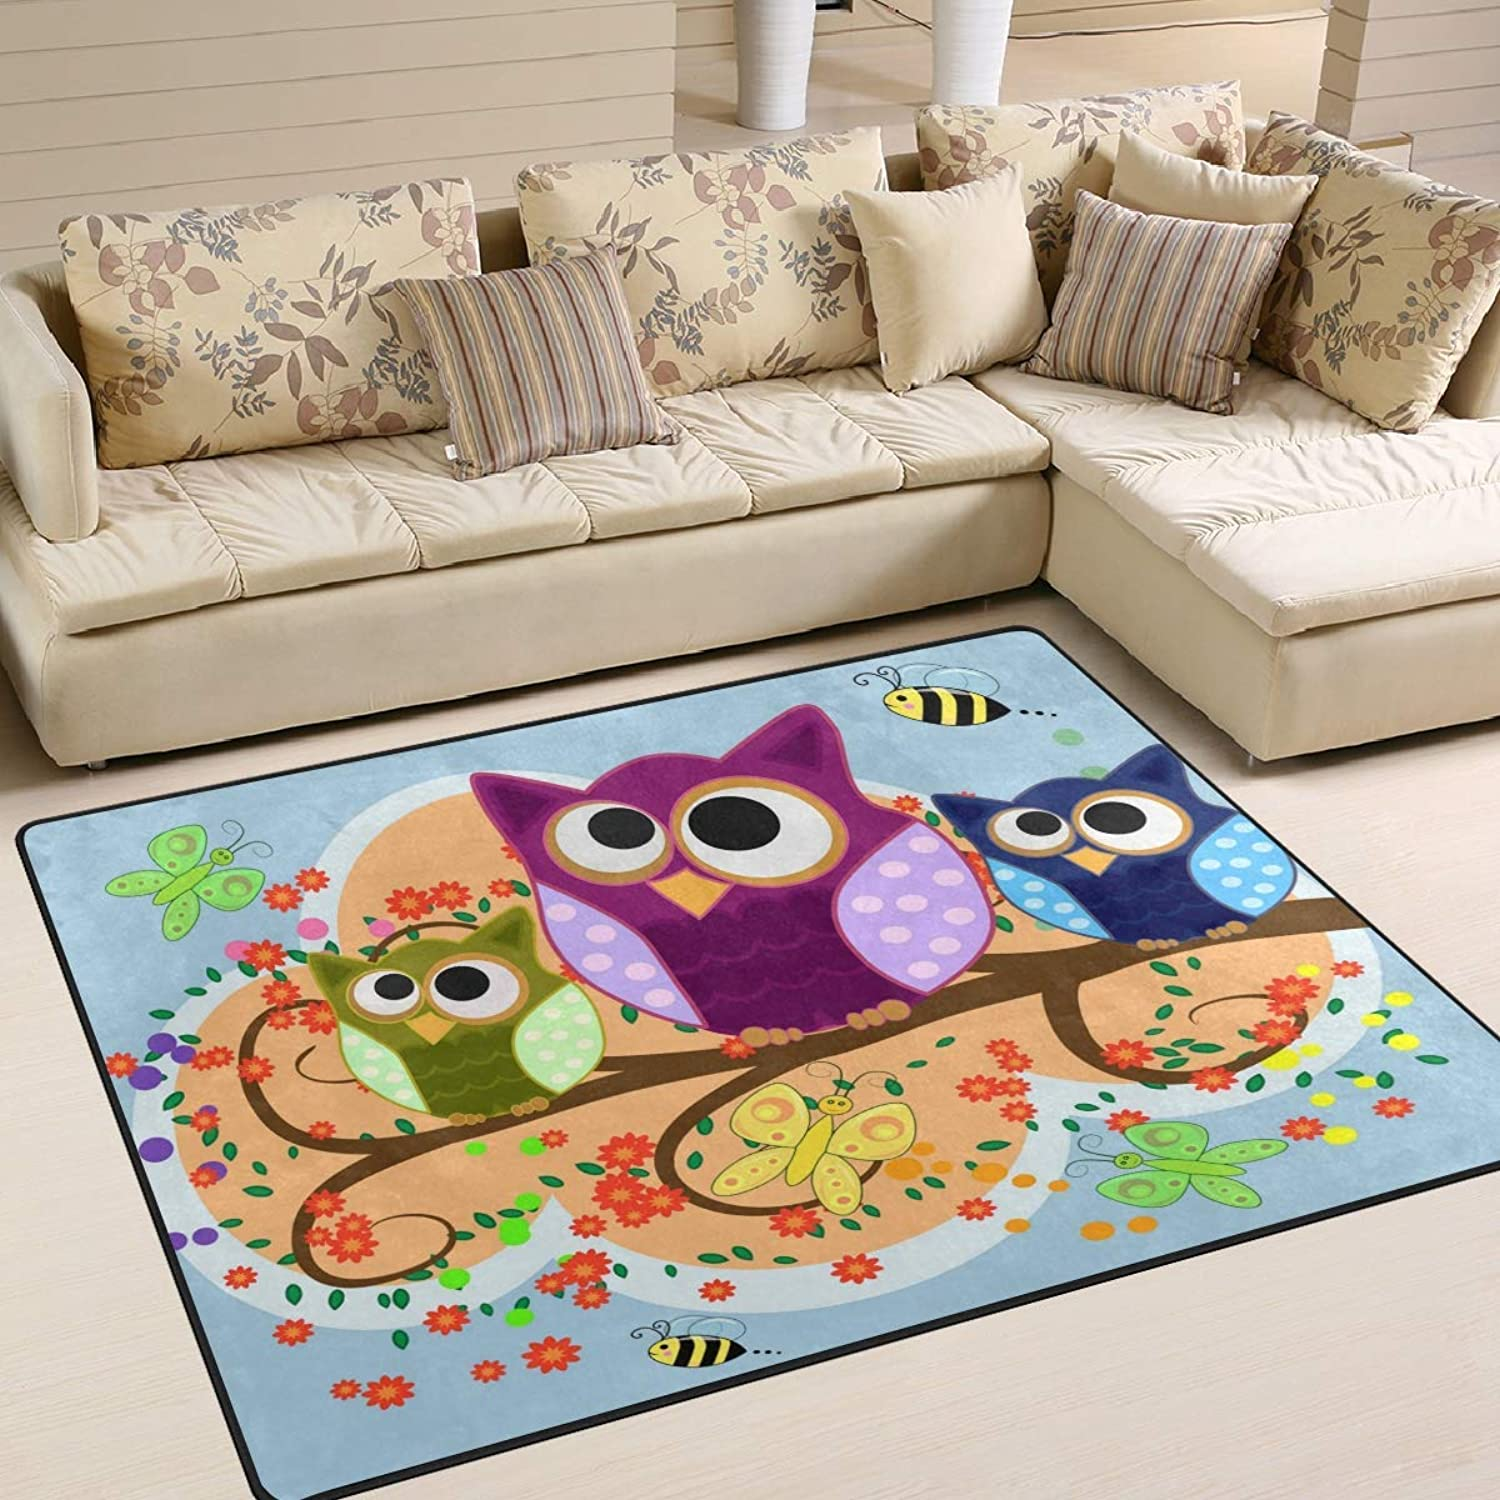 Happy Family of Owls Bird Butterfly Bee Flower Area Rug Floor Mat Rug Indoor Front Door Kitchen and Living Room Bedroom Mats Rubber Non Slip